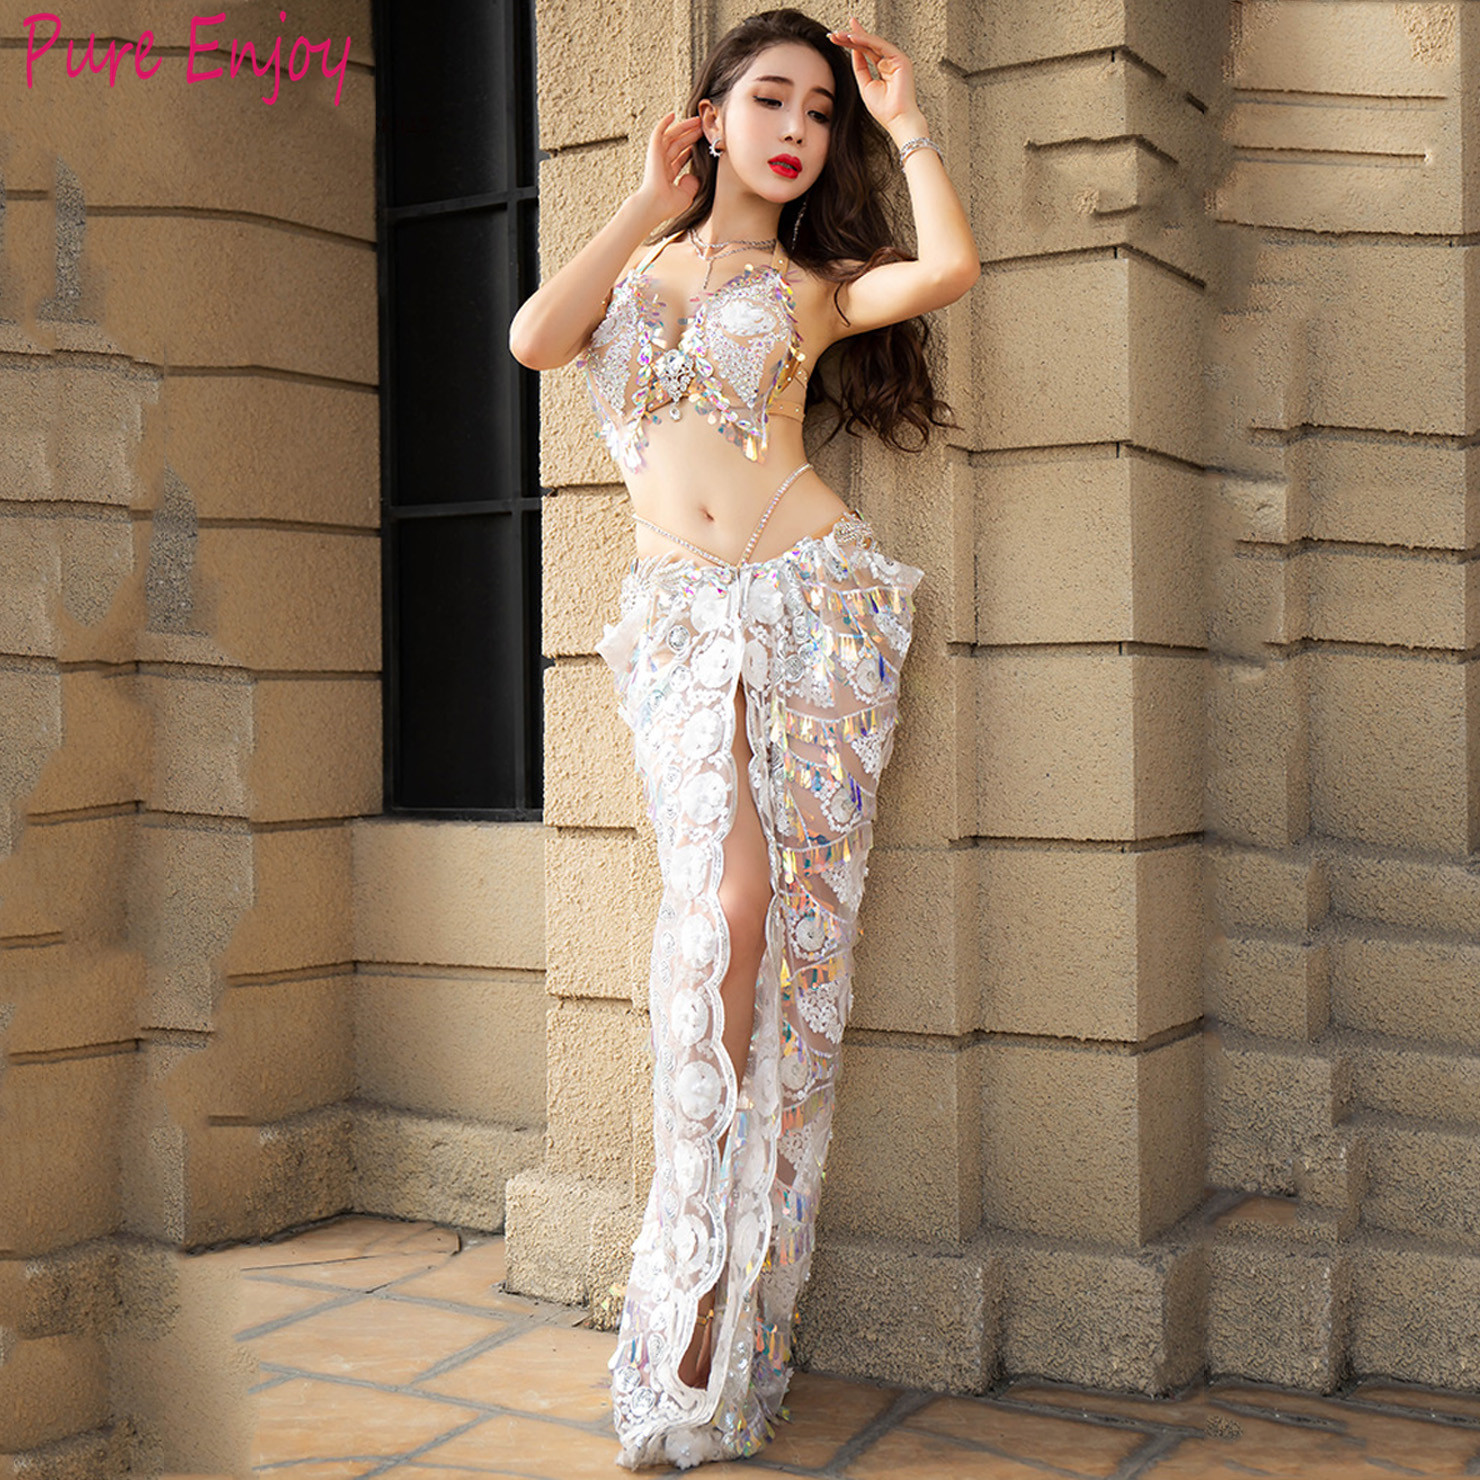 Belly Dance Performance Outfit Women 2020 New Sexy Bra+Long Skirt 2pcs Set Oriental Dance Competition Dance Clothes